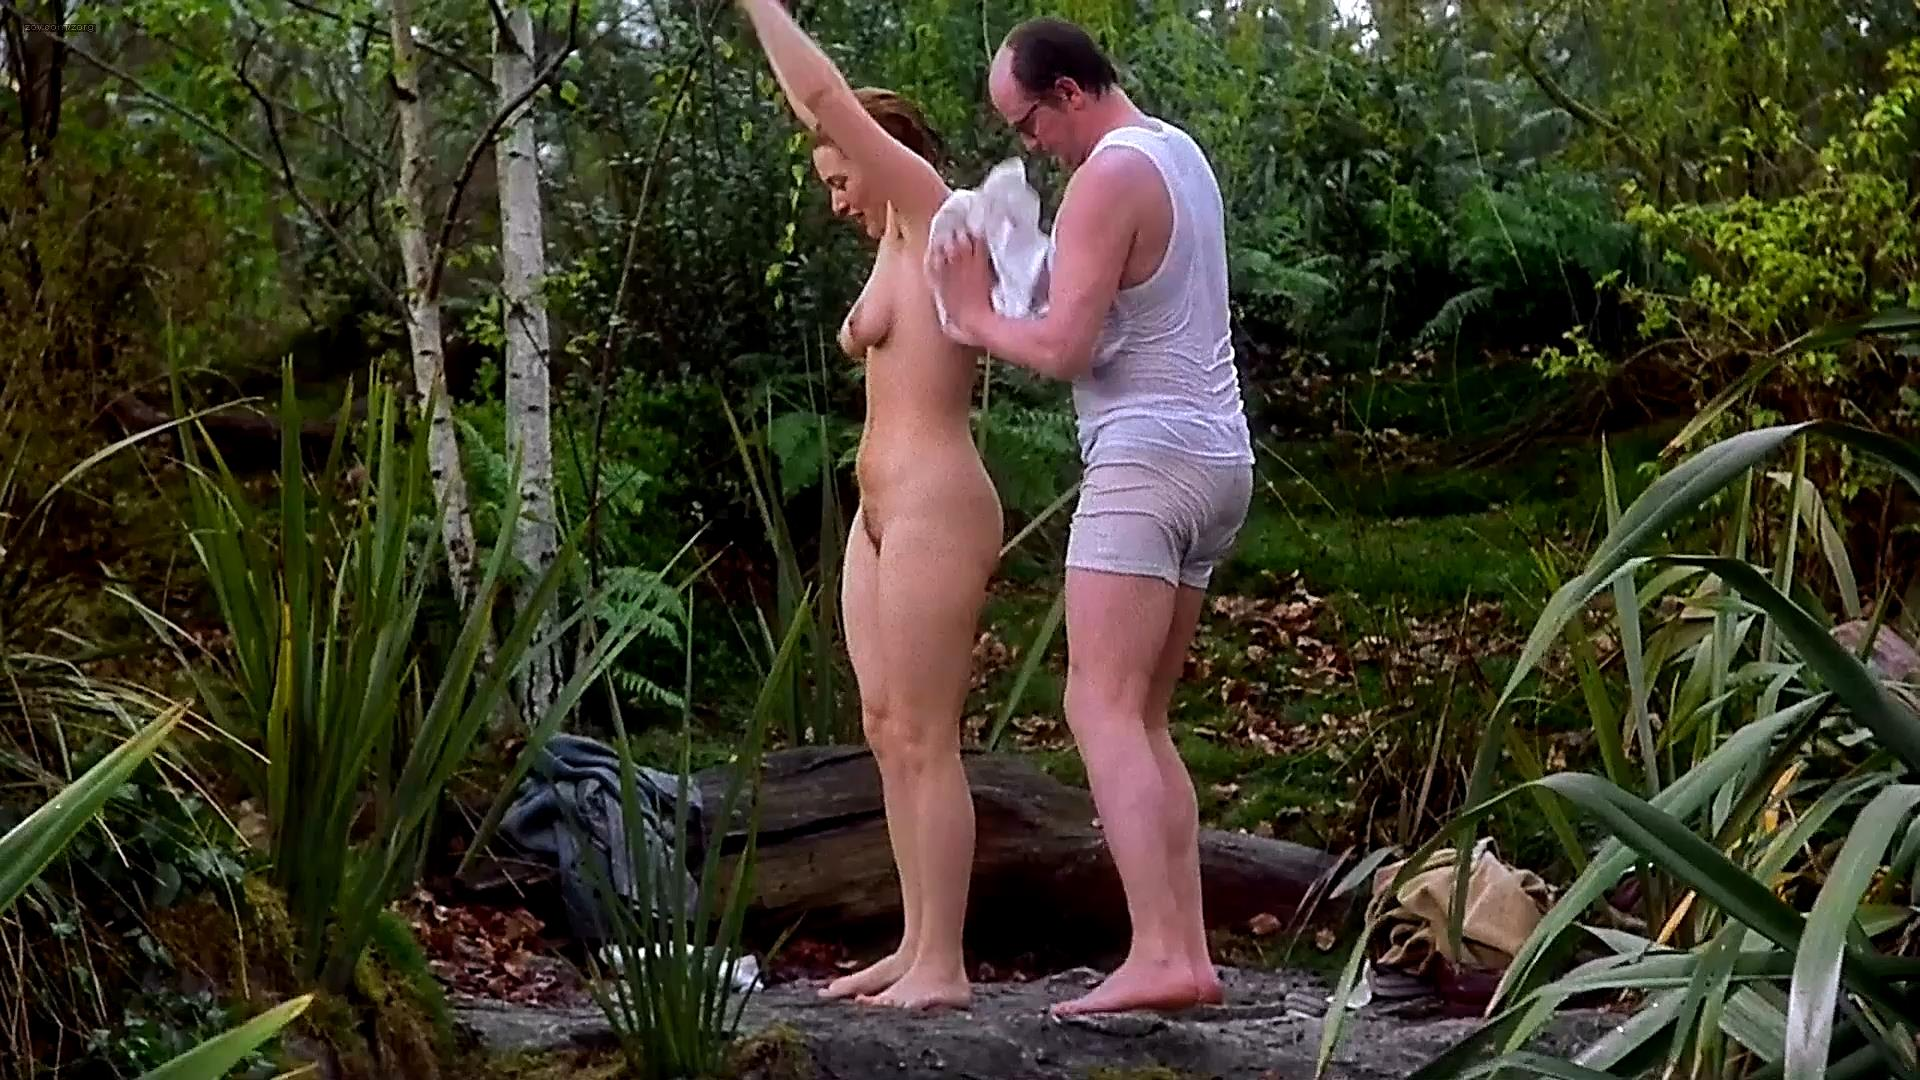 Handjob in the bush pictures-6239